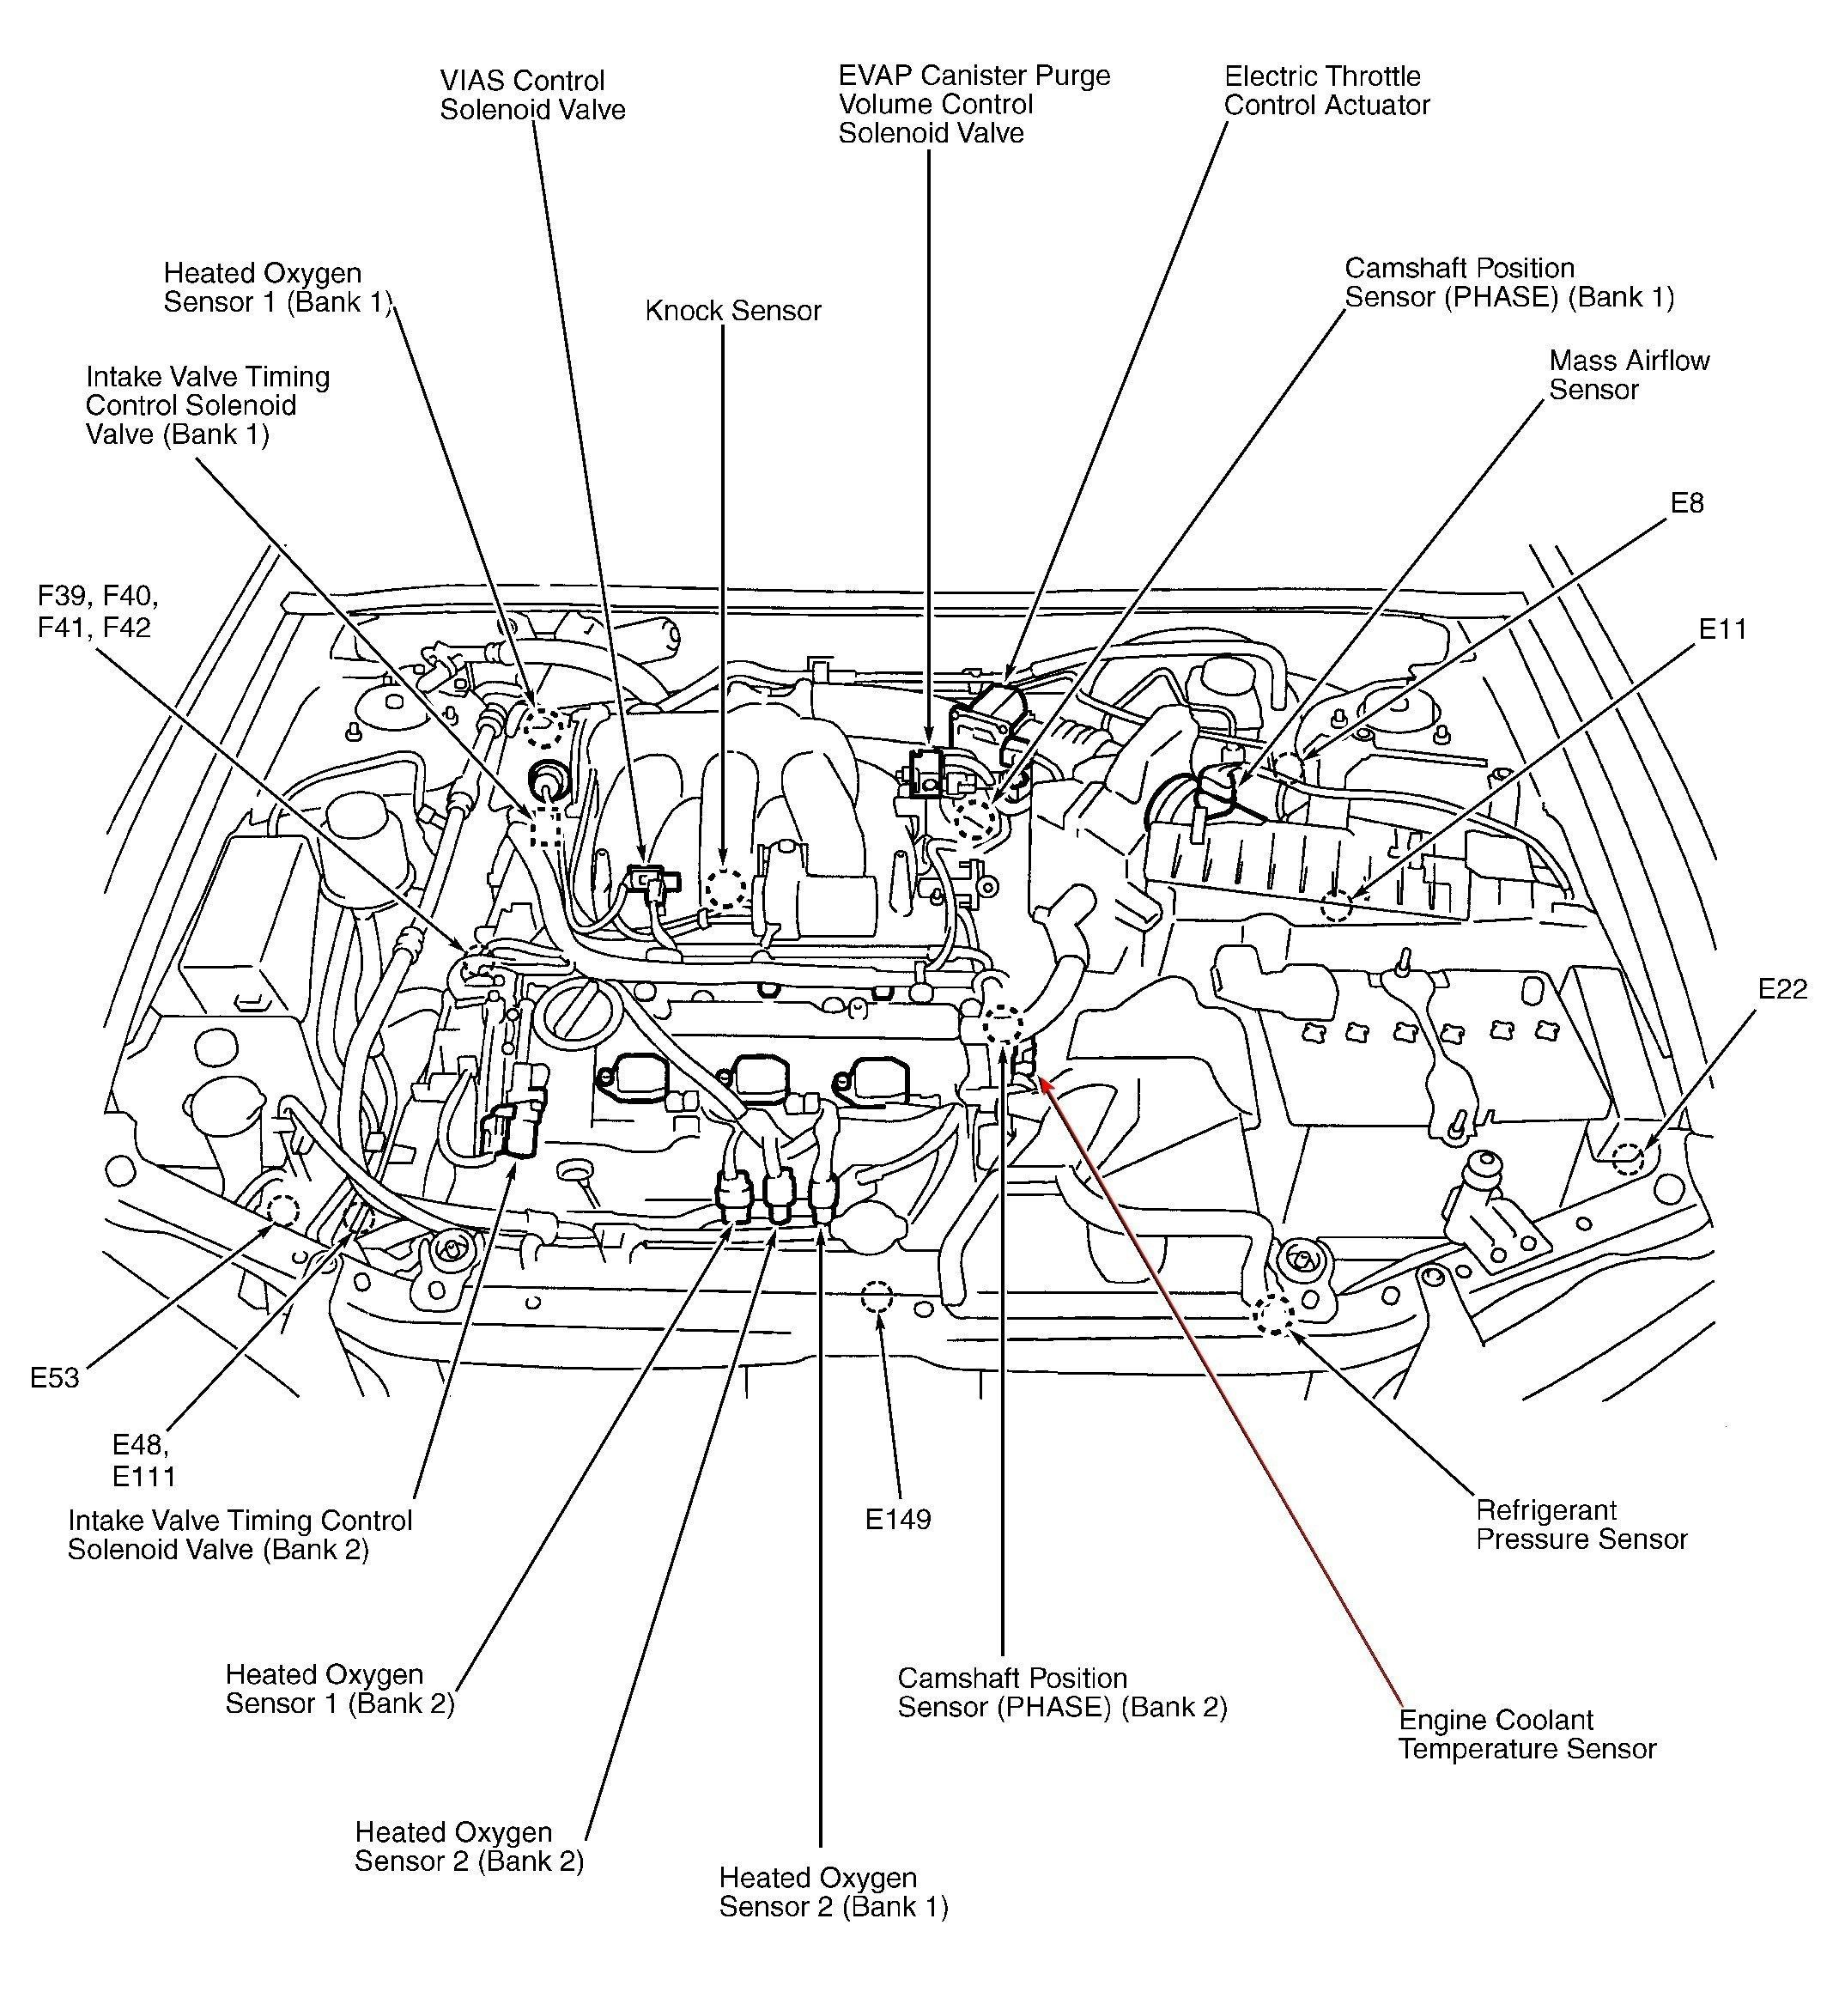 1997 nissan pathfinder engine diagram wiring diagram query 1997 Nissan  Altima Exhaust System Diagram 1997 nissan pathfinder part… in 2020 | Diagram,  Nissan, Nissan frontierPinterest